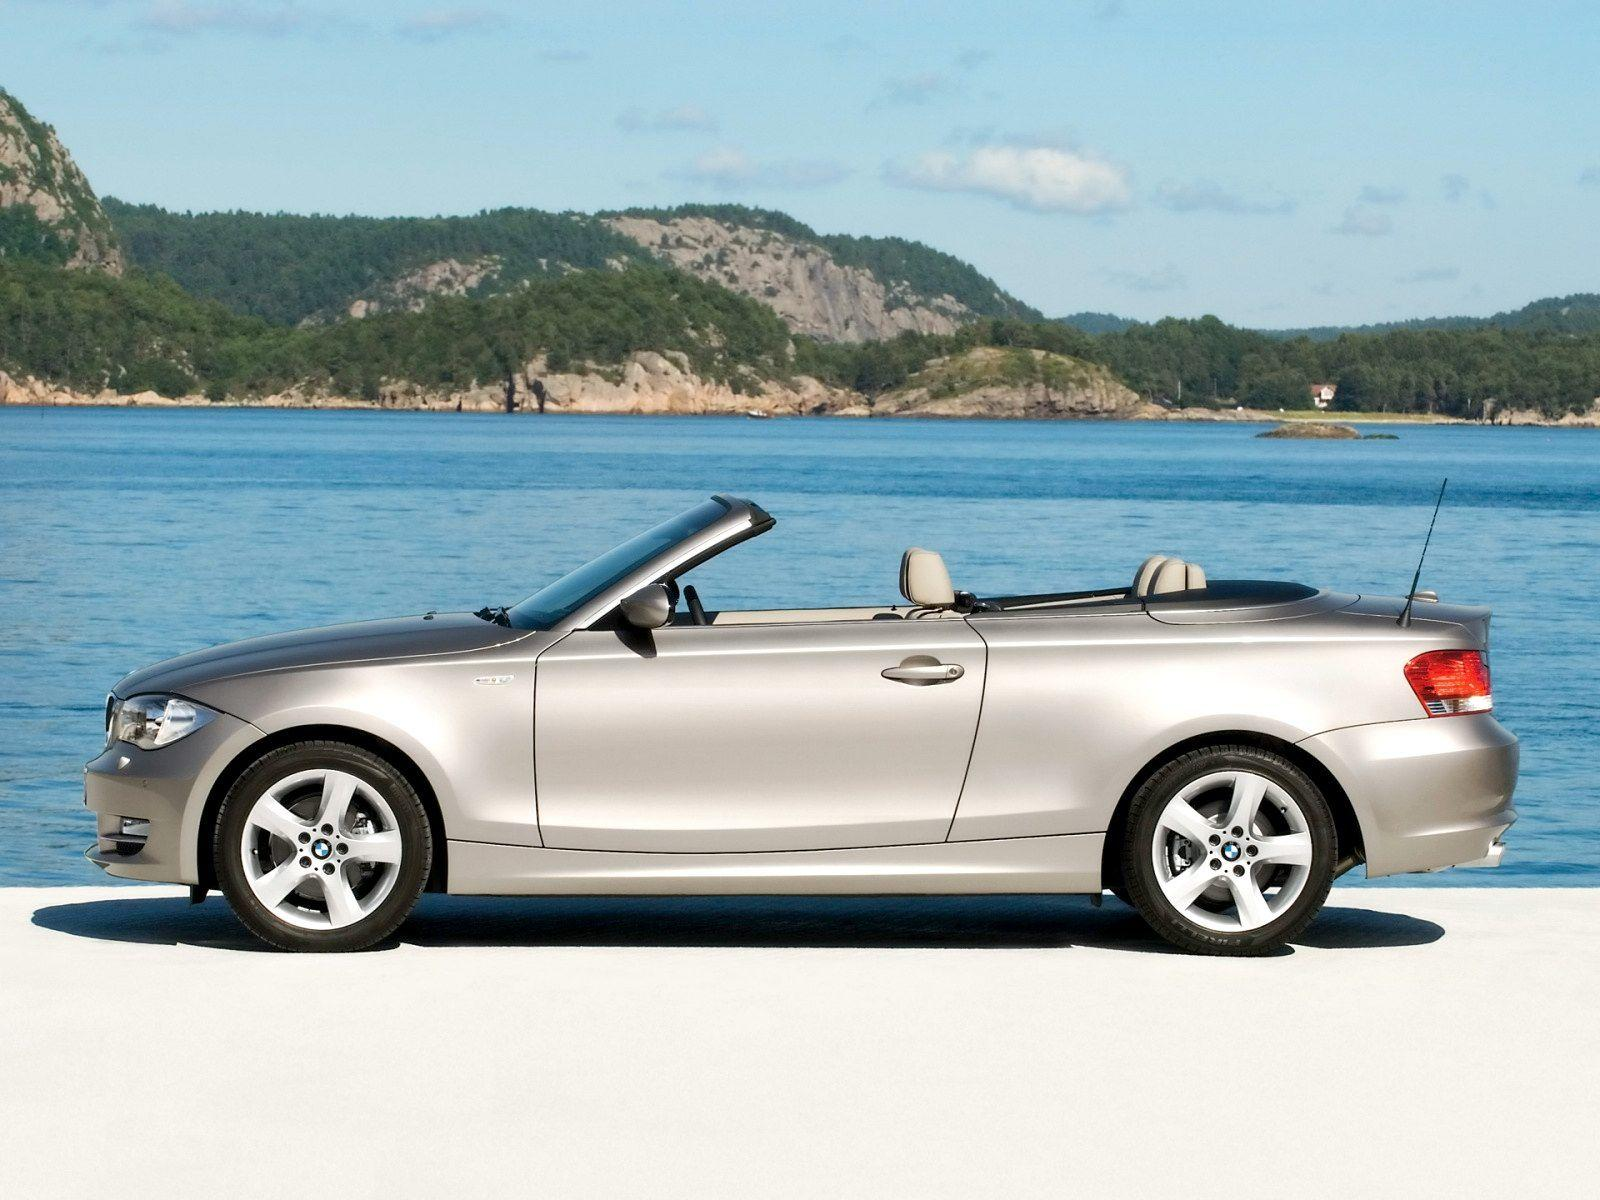 2008 BMW 1 Series Convertible Wallpaper 16 - 1600x1200